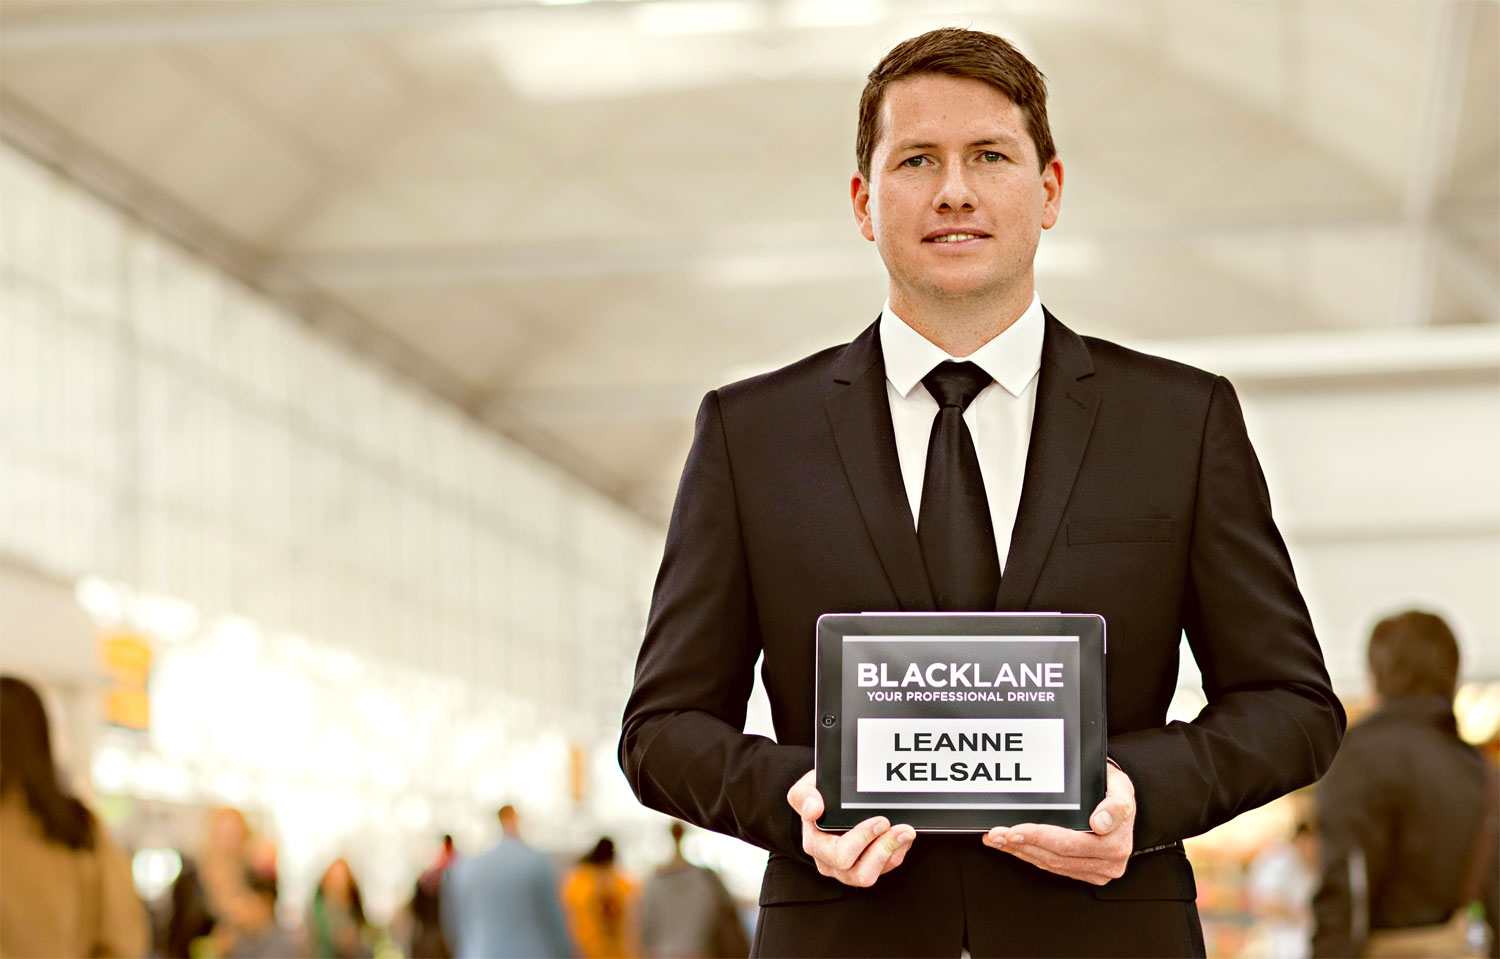 Skip The Queues And Travel Like An A-Lister With The Blacklane PASS 4